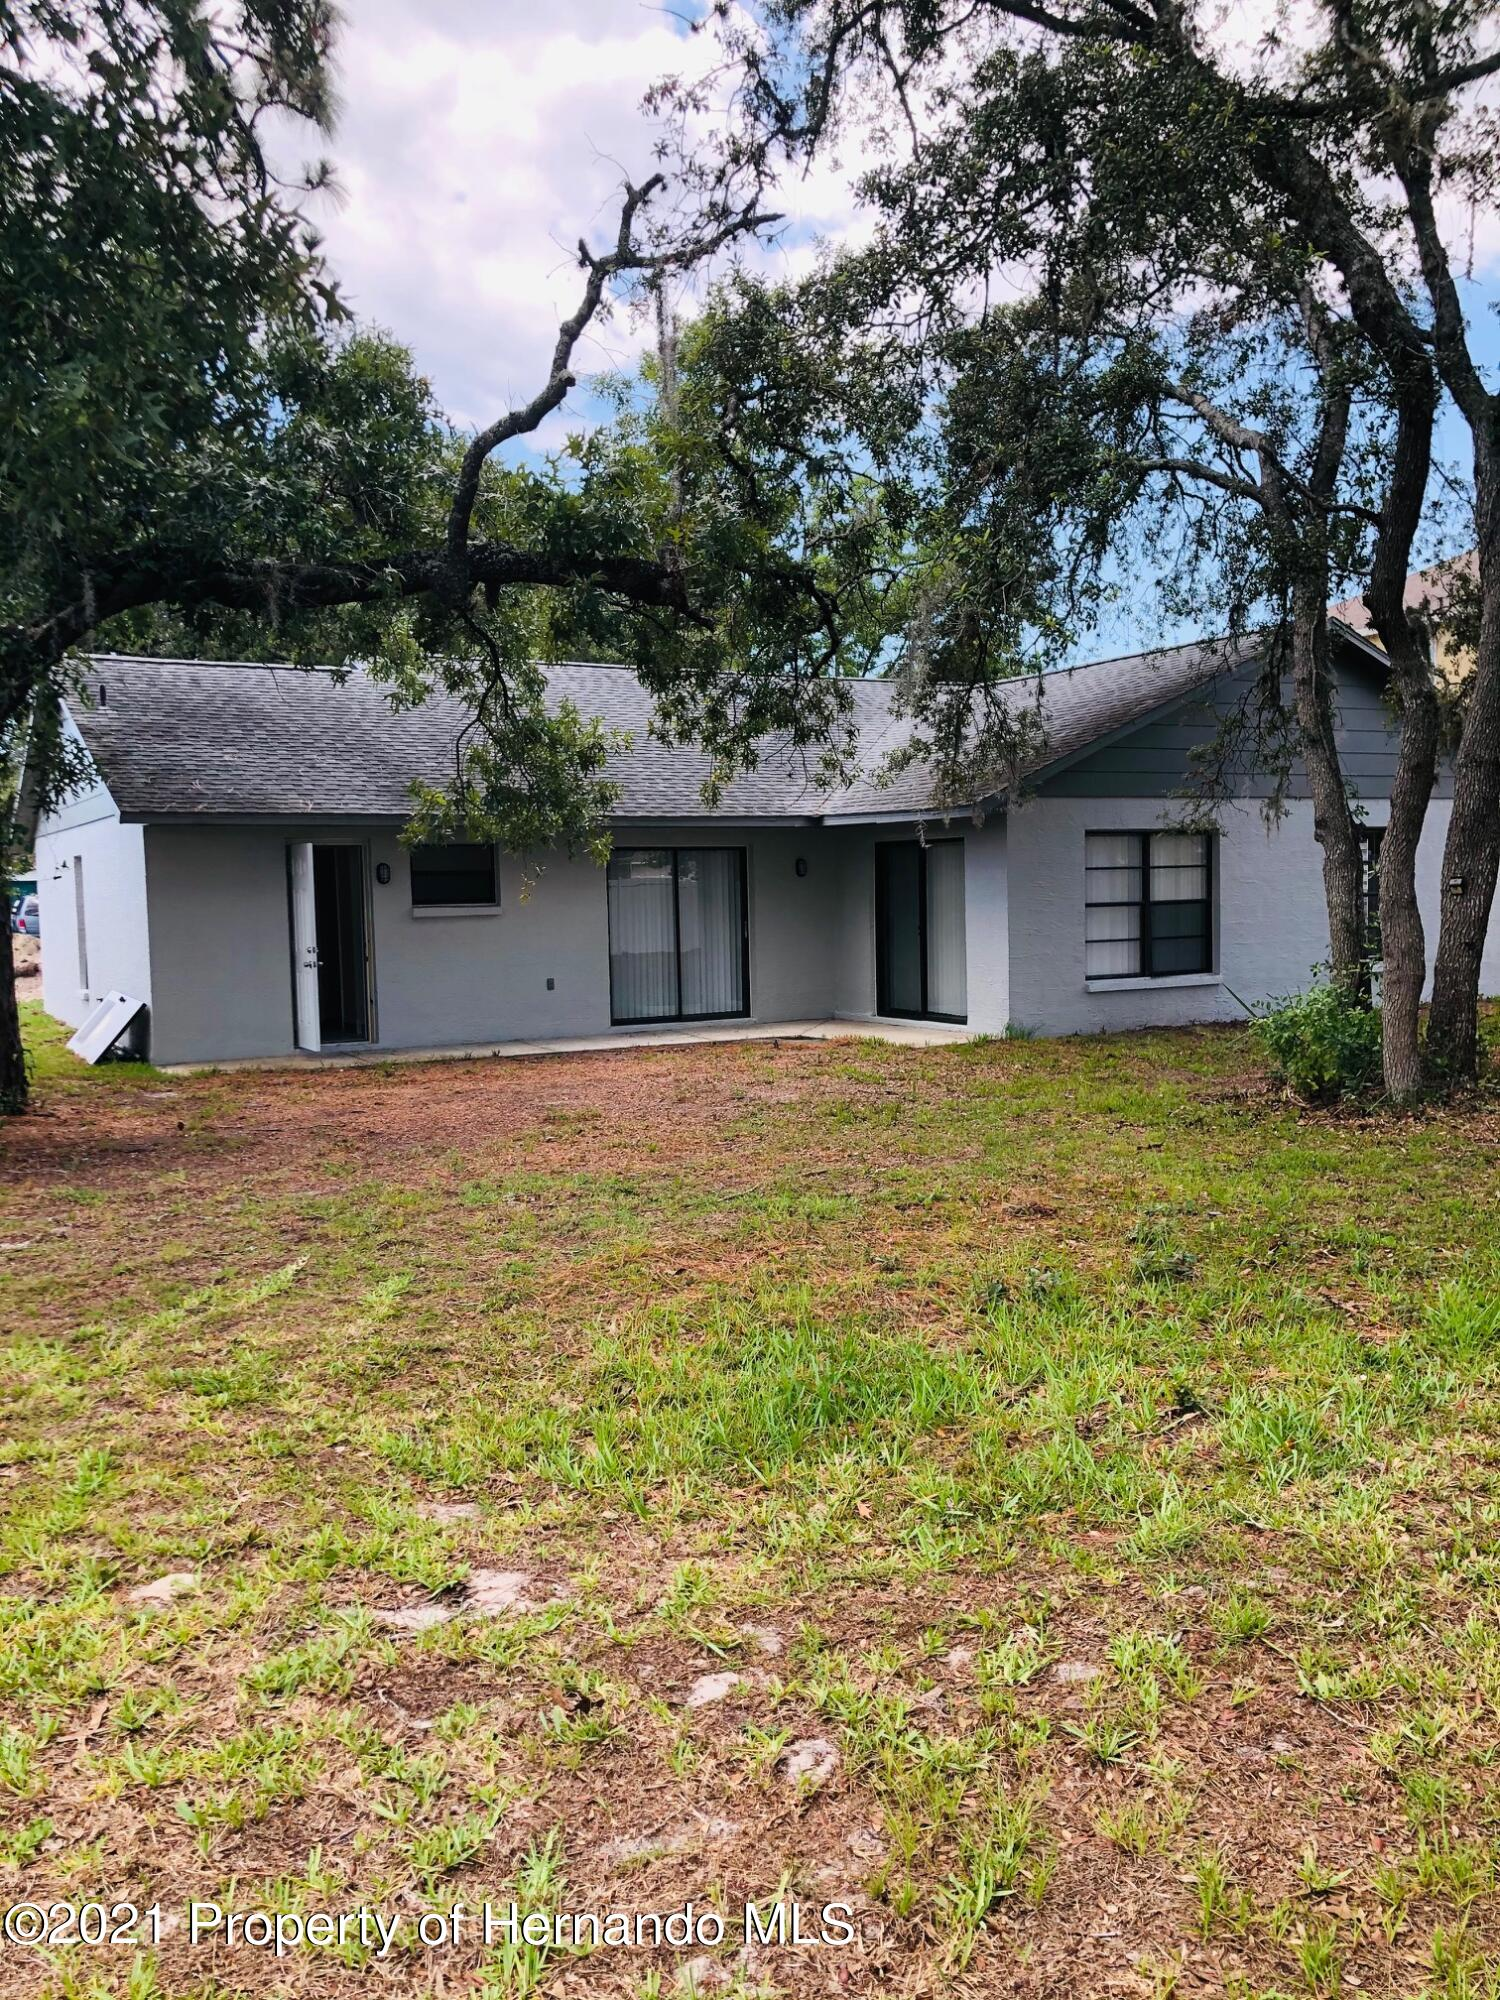 Details for 10196 Gifford Drive, Spring Hill, FL 34608